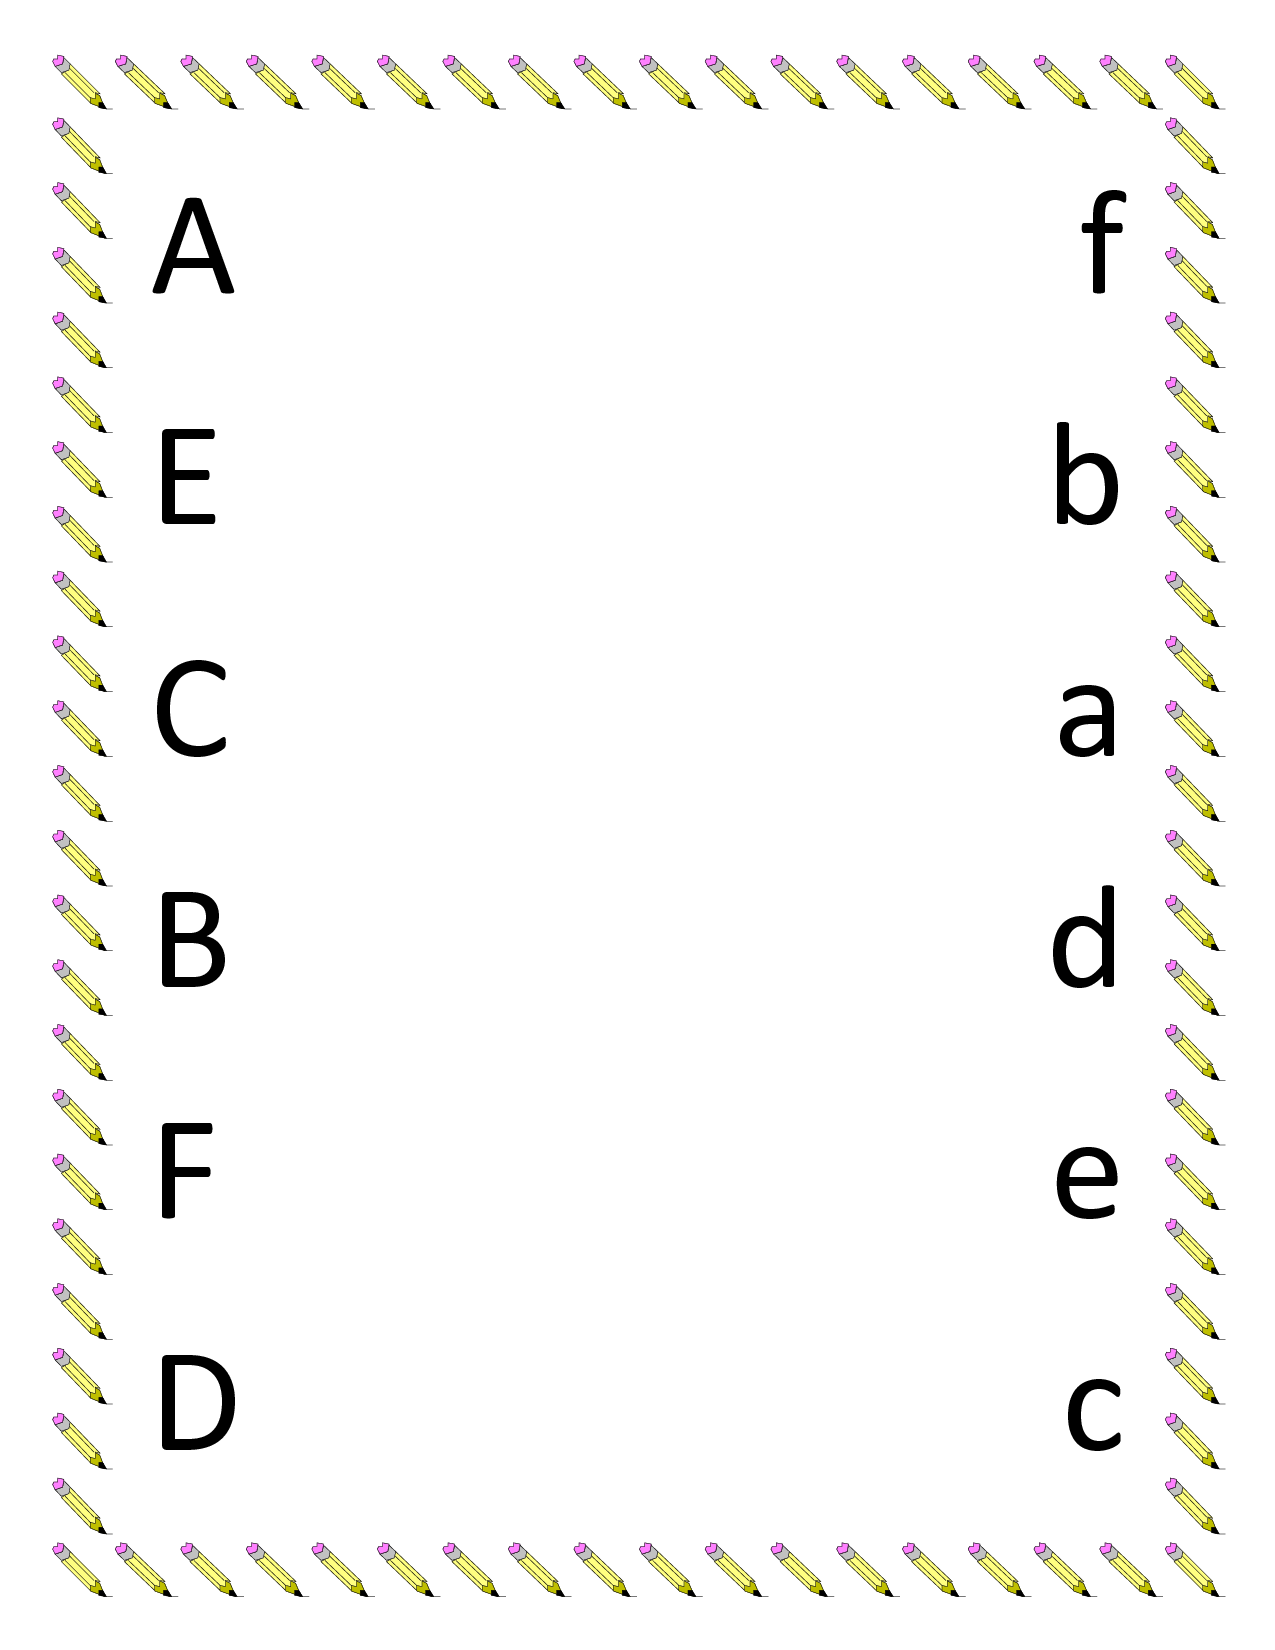 Letter Printable Images Gallery Category Page 13